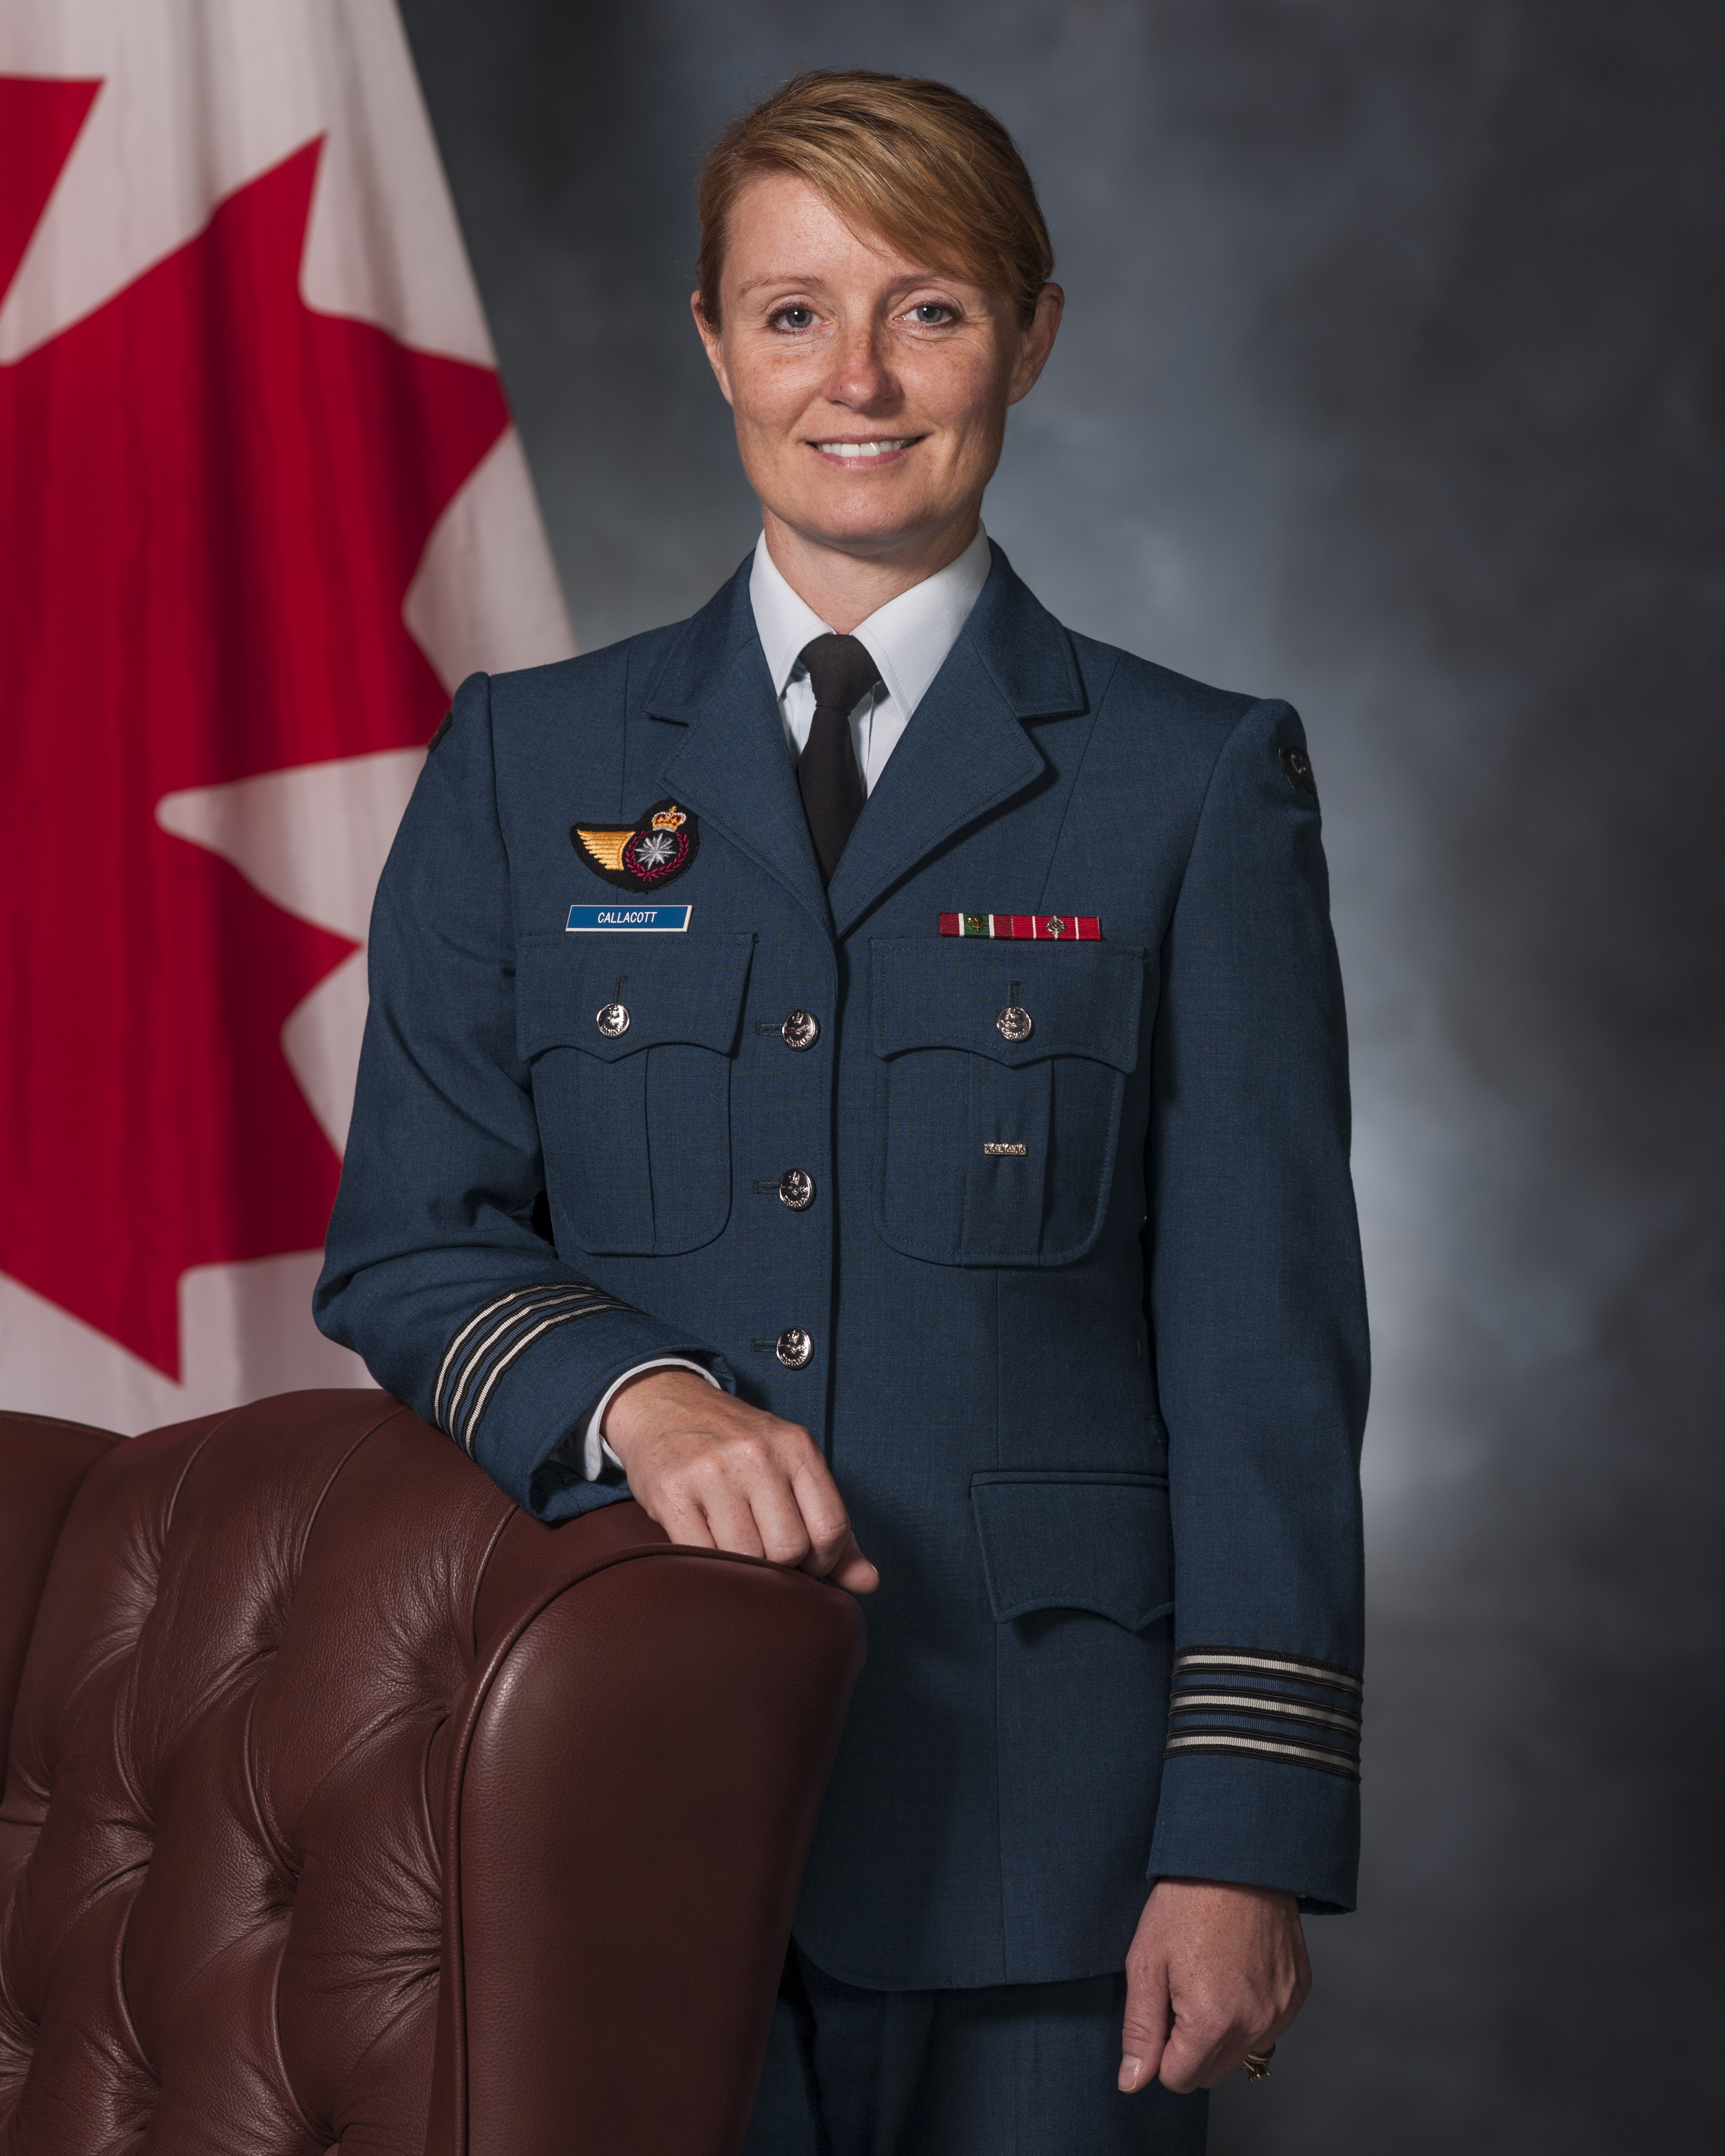 Canadian Air Force Dress Uniform Pictures to Pin on ...